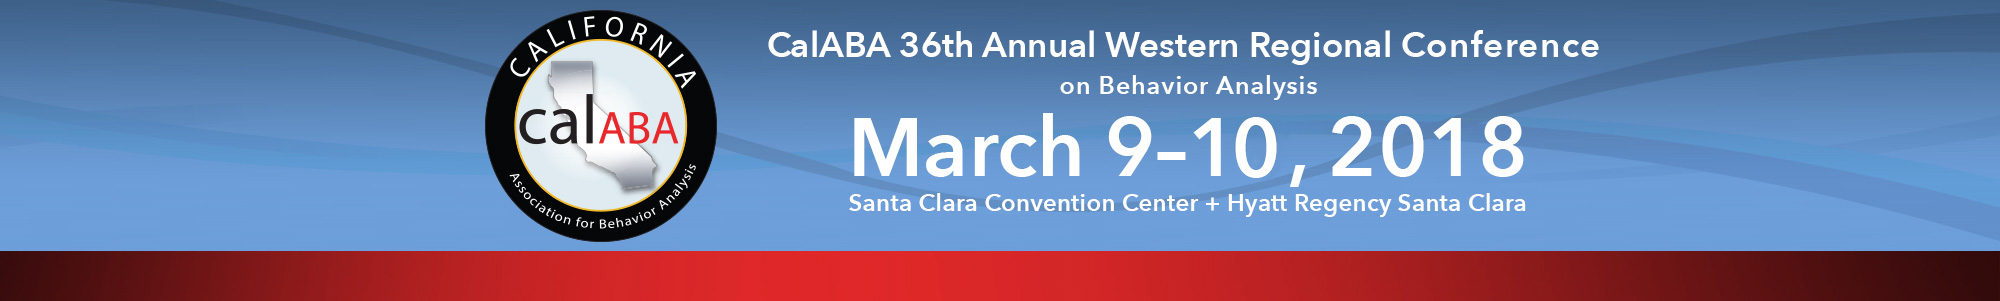 CalABA 36th Annual Western Regional Conference on Behavior Analysis